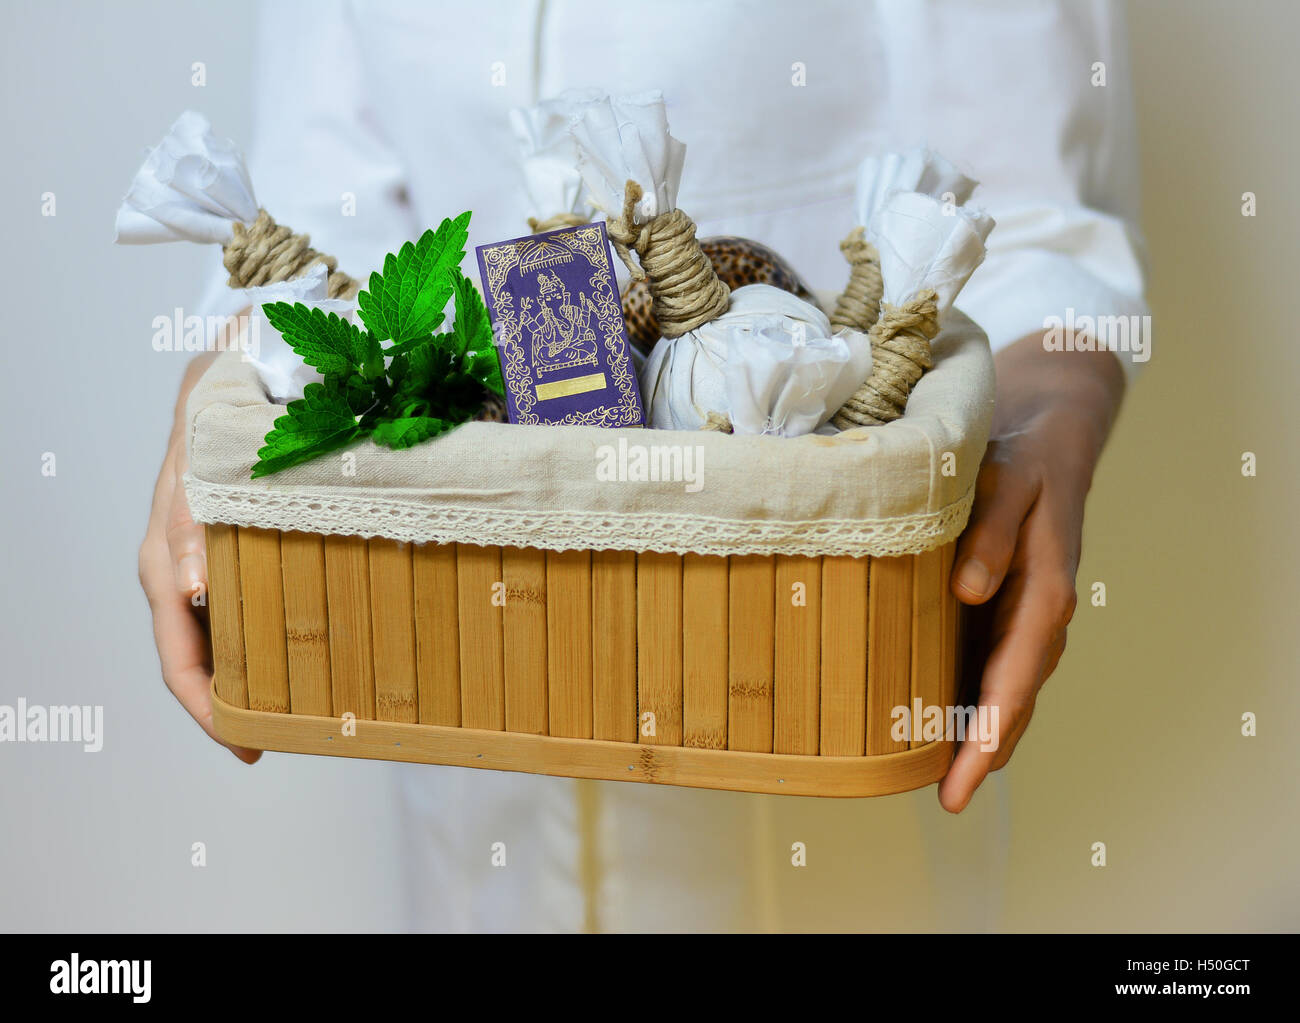 Beautician holding equipment for massage and aroma therapy. - Stock Image